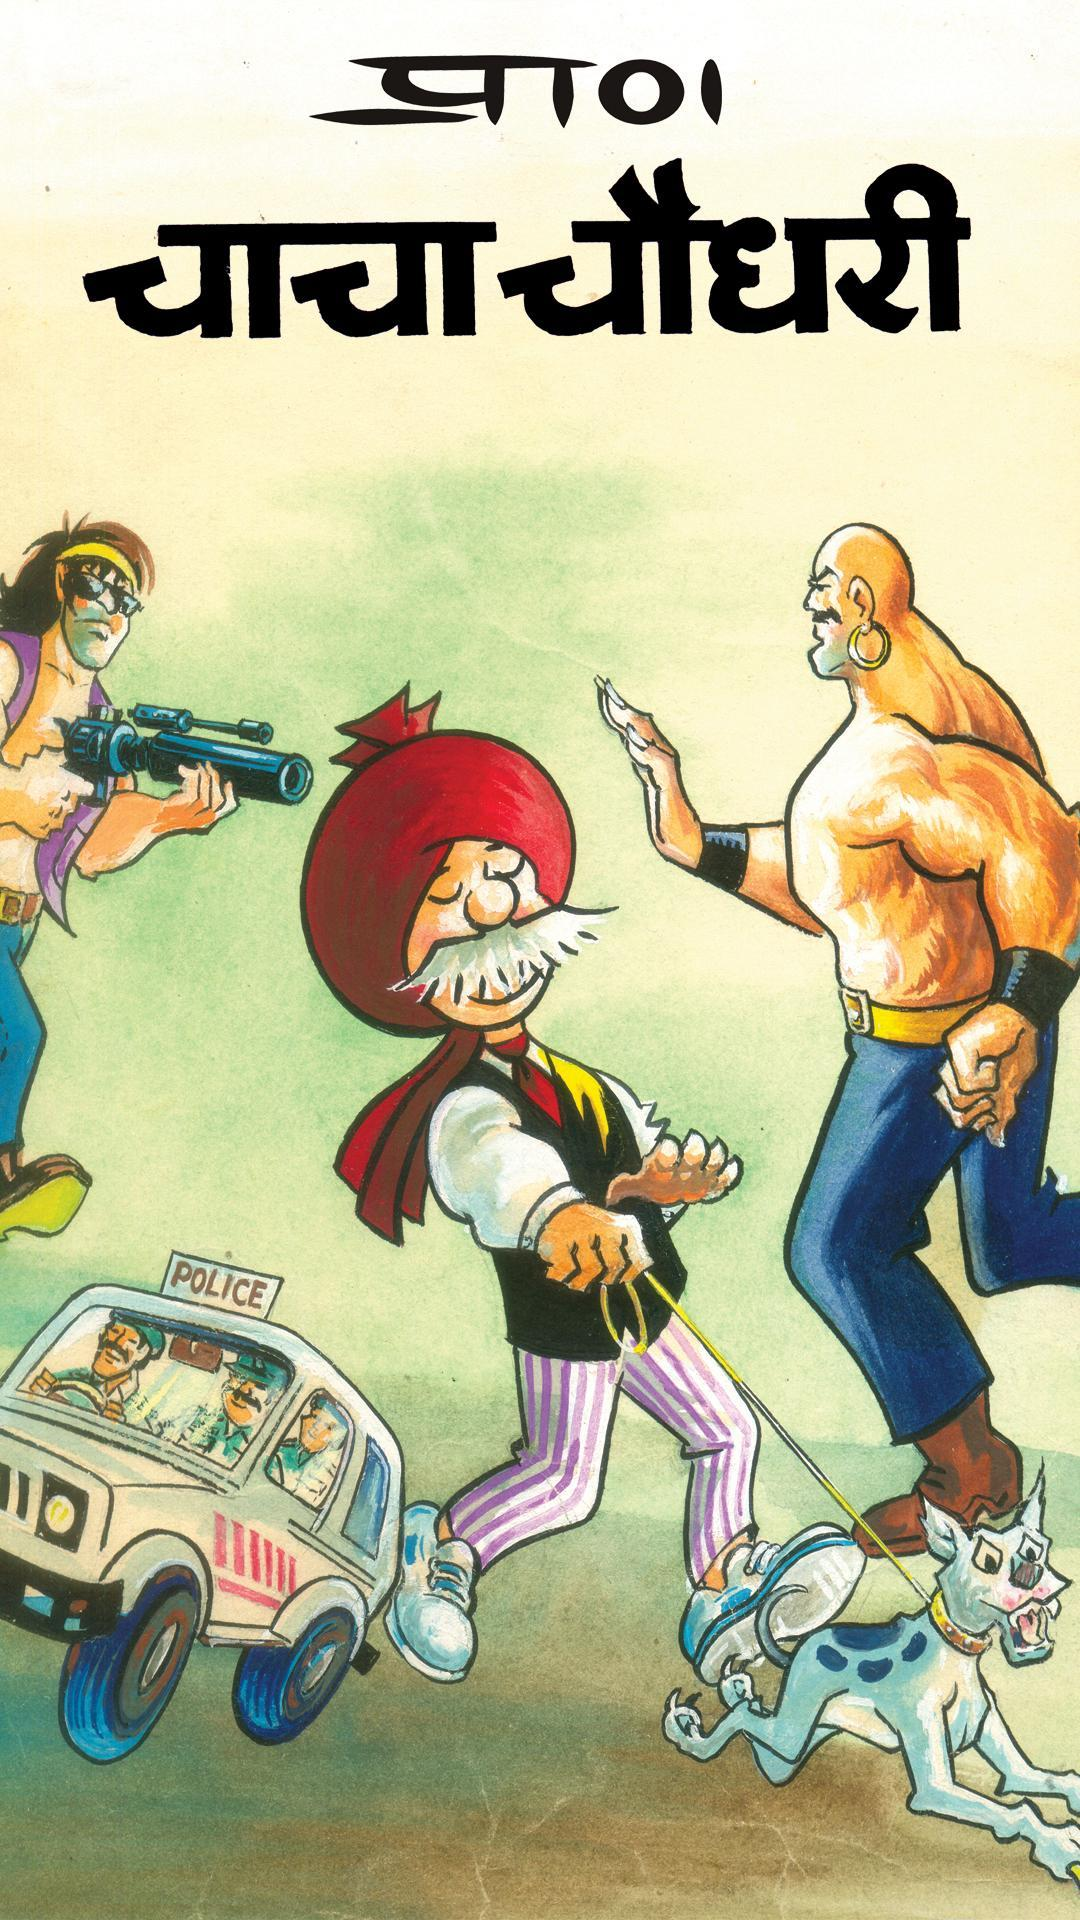 CHACHA CHAUDHARY Comics - Cartoonist Pran for Android - APK Download